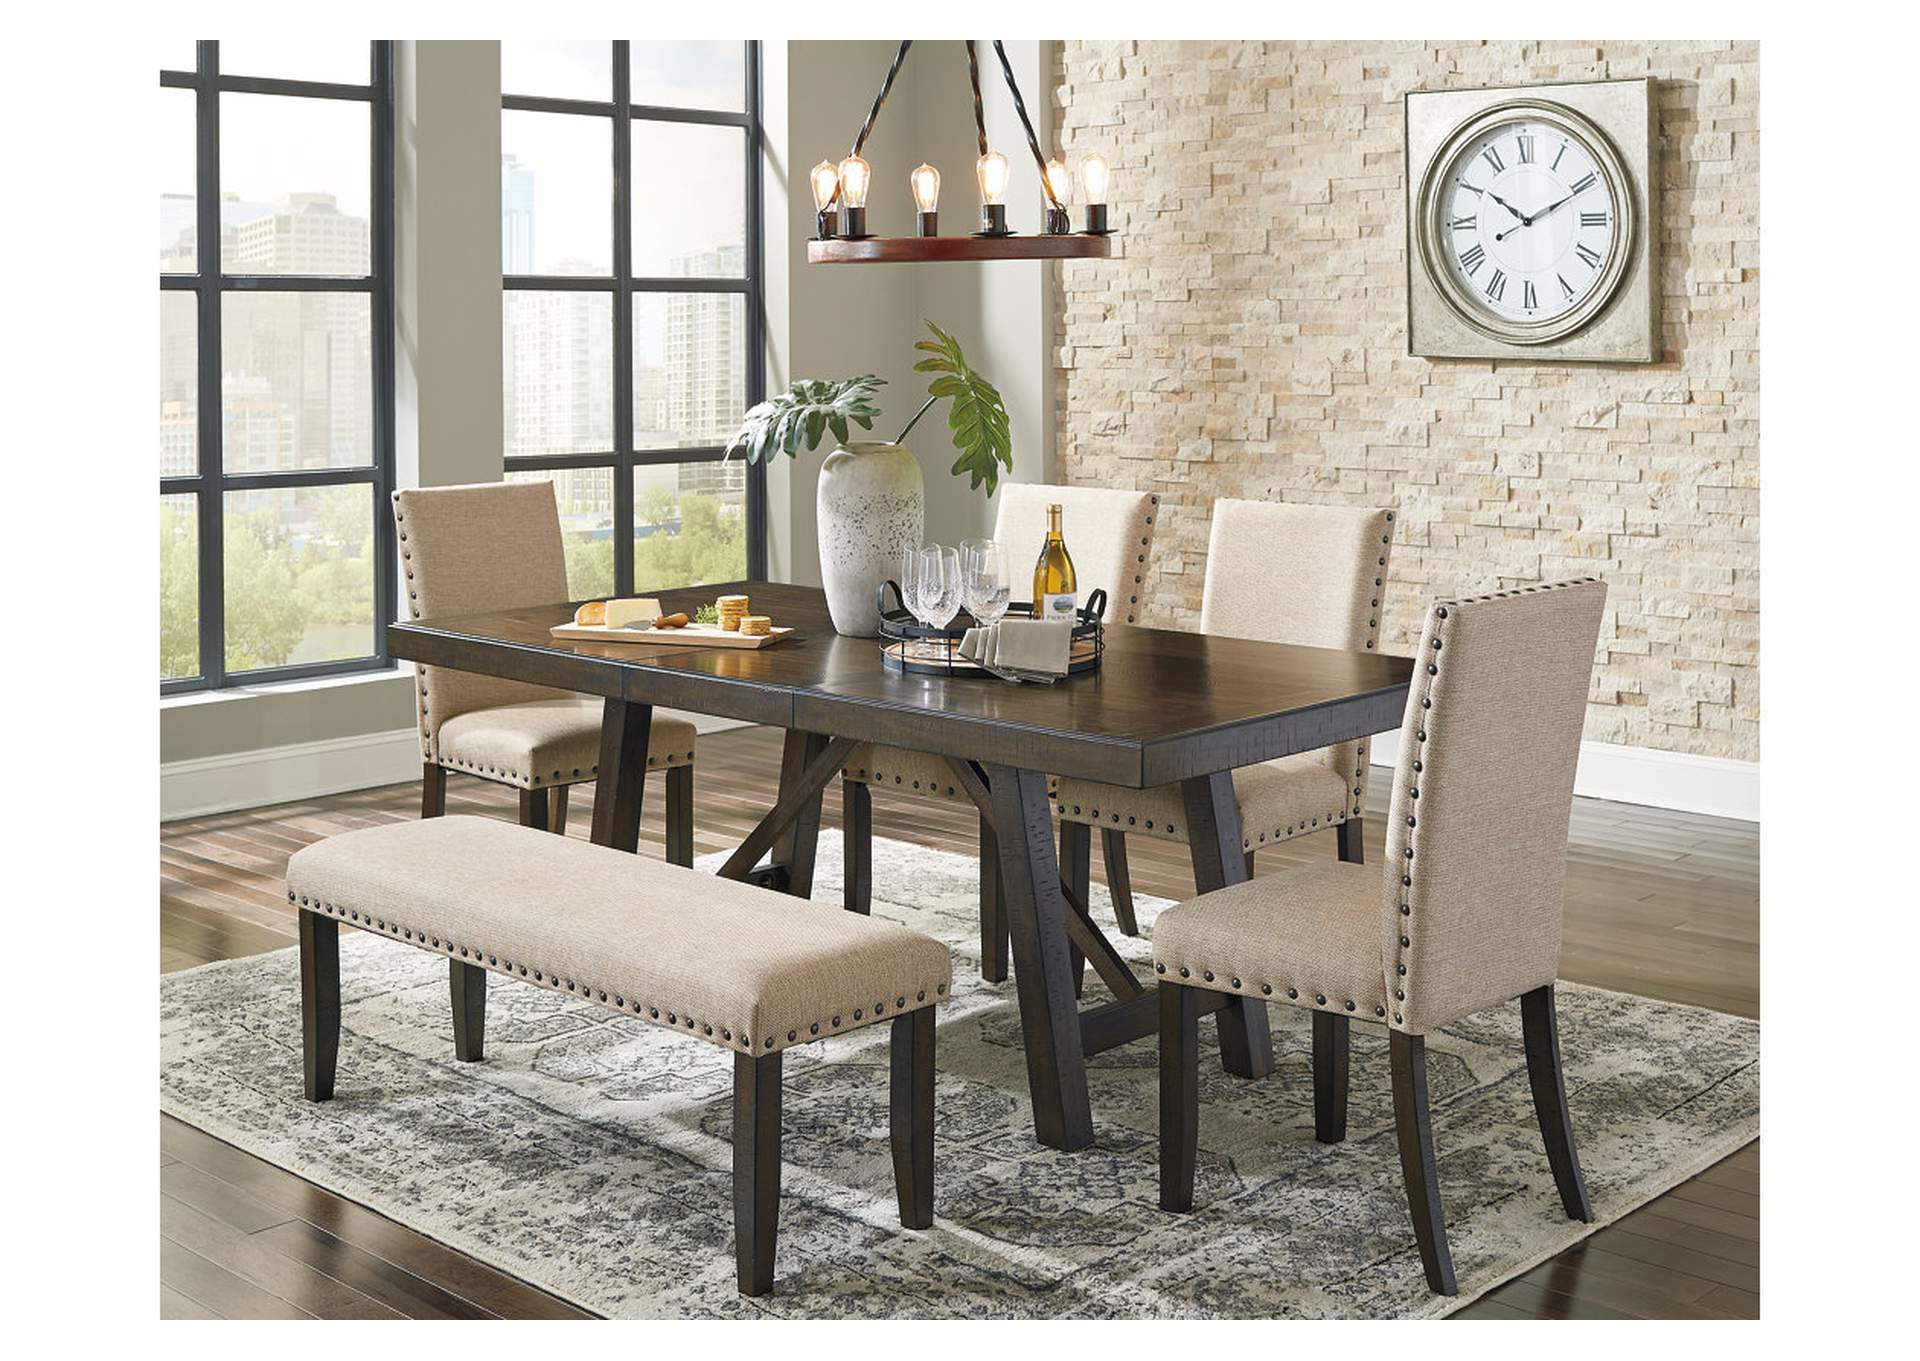 Rokane Light Brown Dining Table w/2 Side Chairs & Bench,Signature Design By Ashley